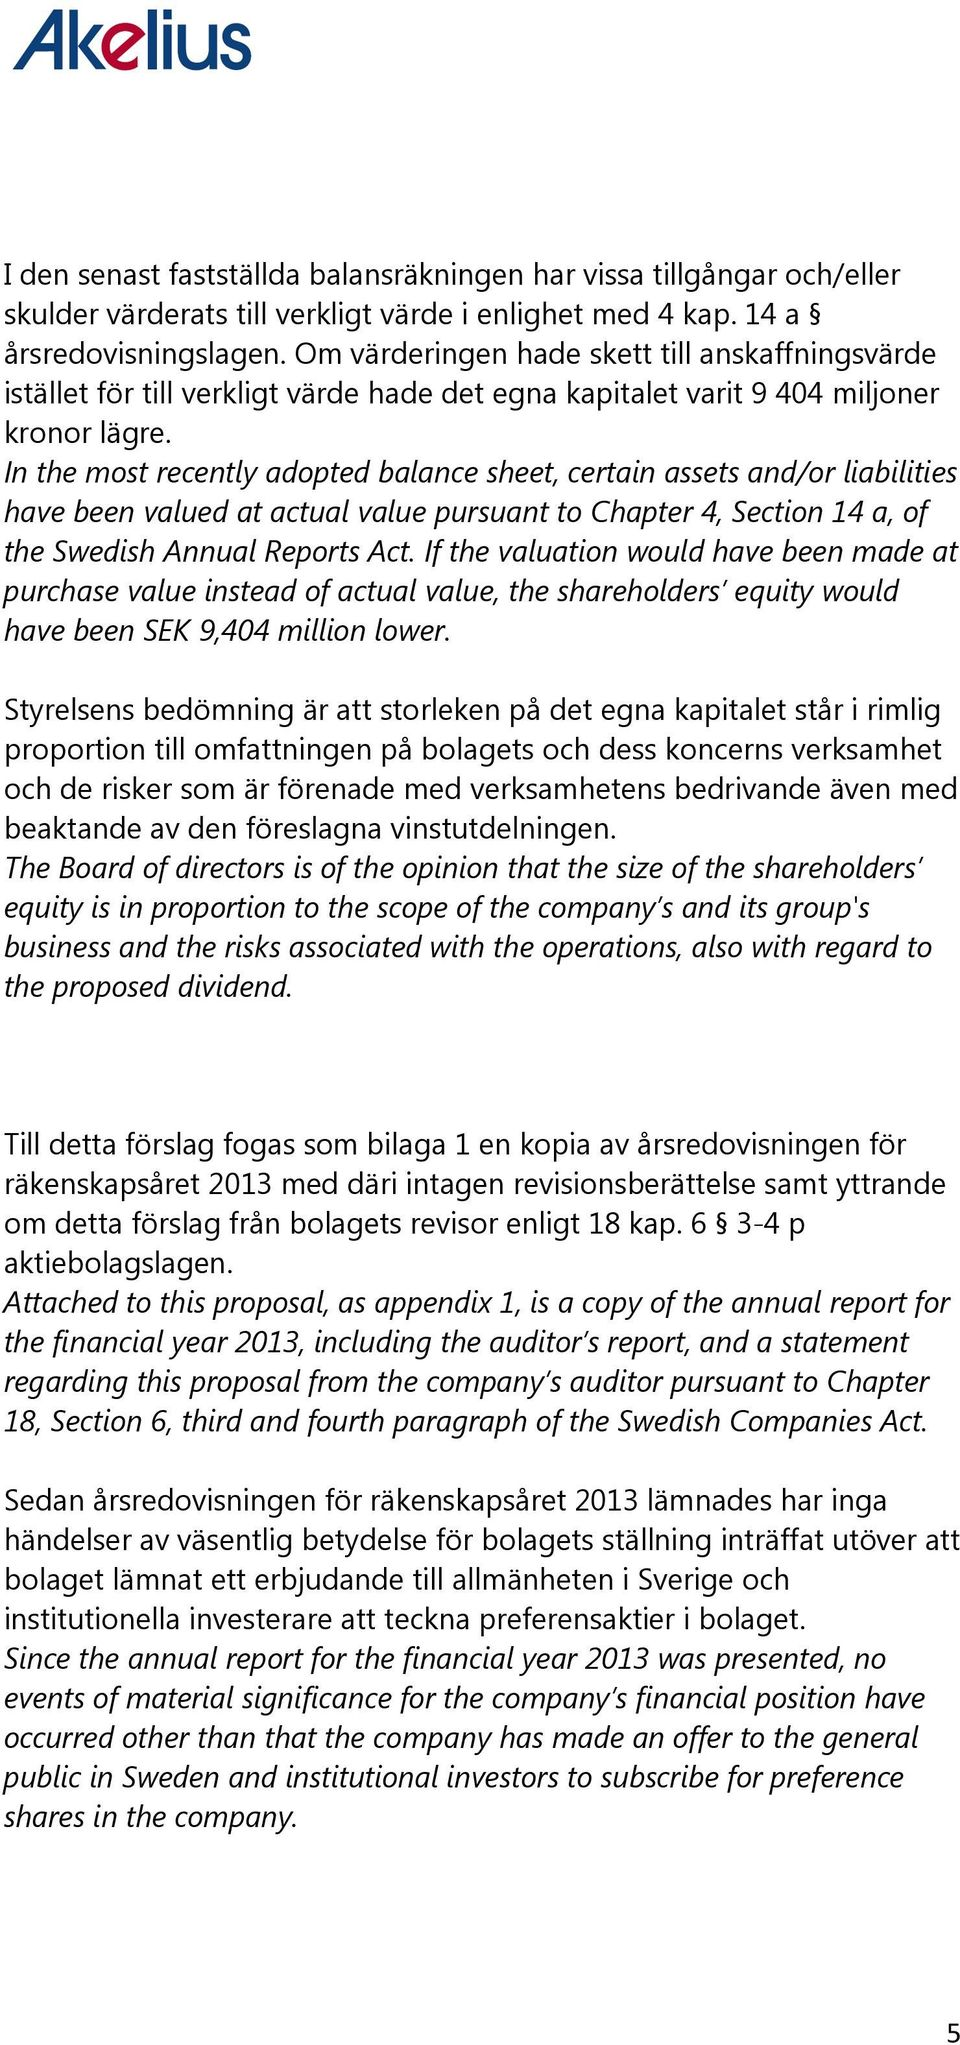 In the most recently adopted balance sheet, certain assets and/or liabilities have been valued at actual value pursuant to Chapter 4, Section 14 a, of the Swedish Annual Reports Act.